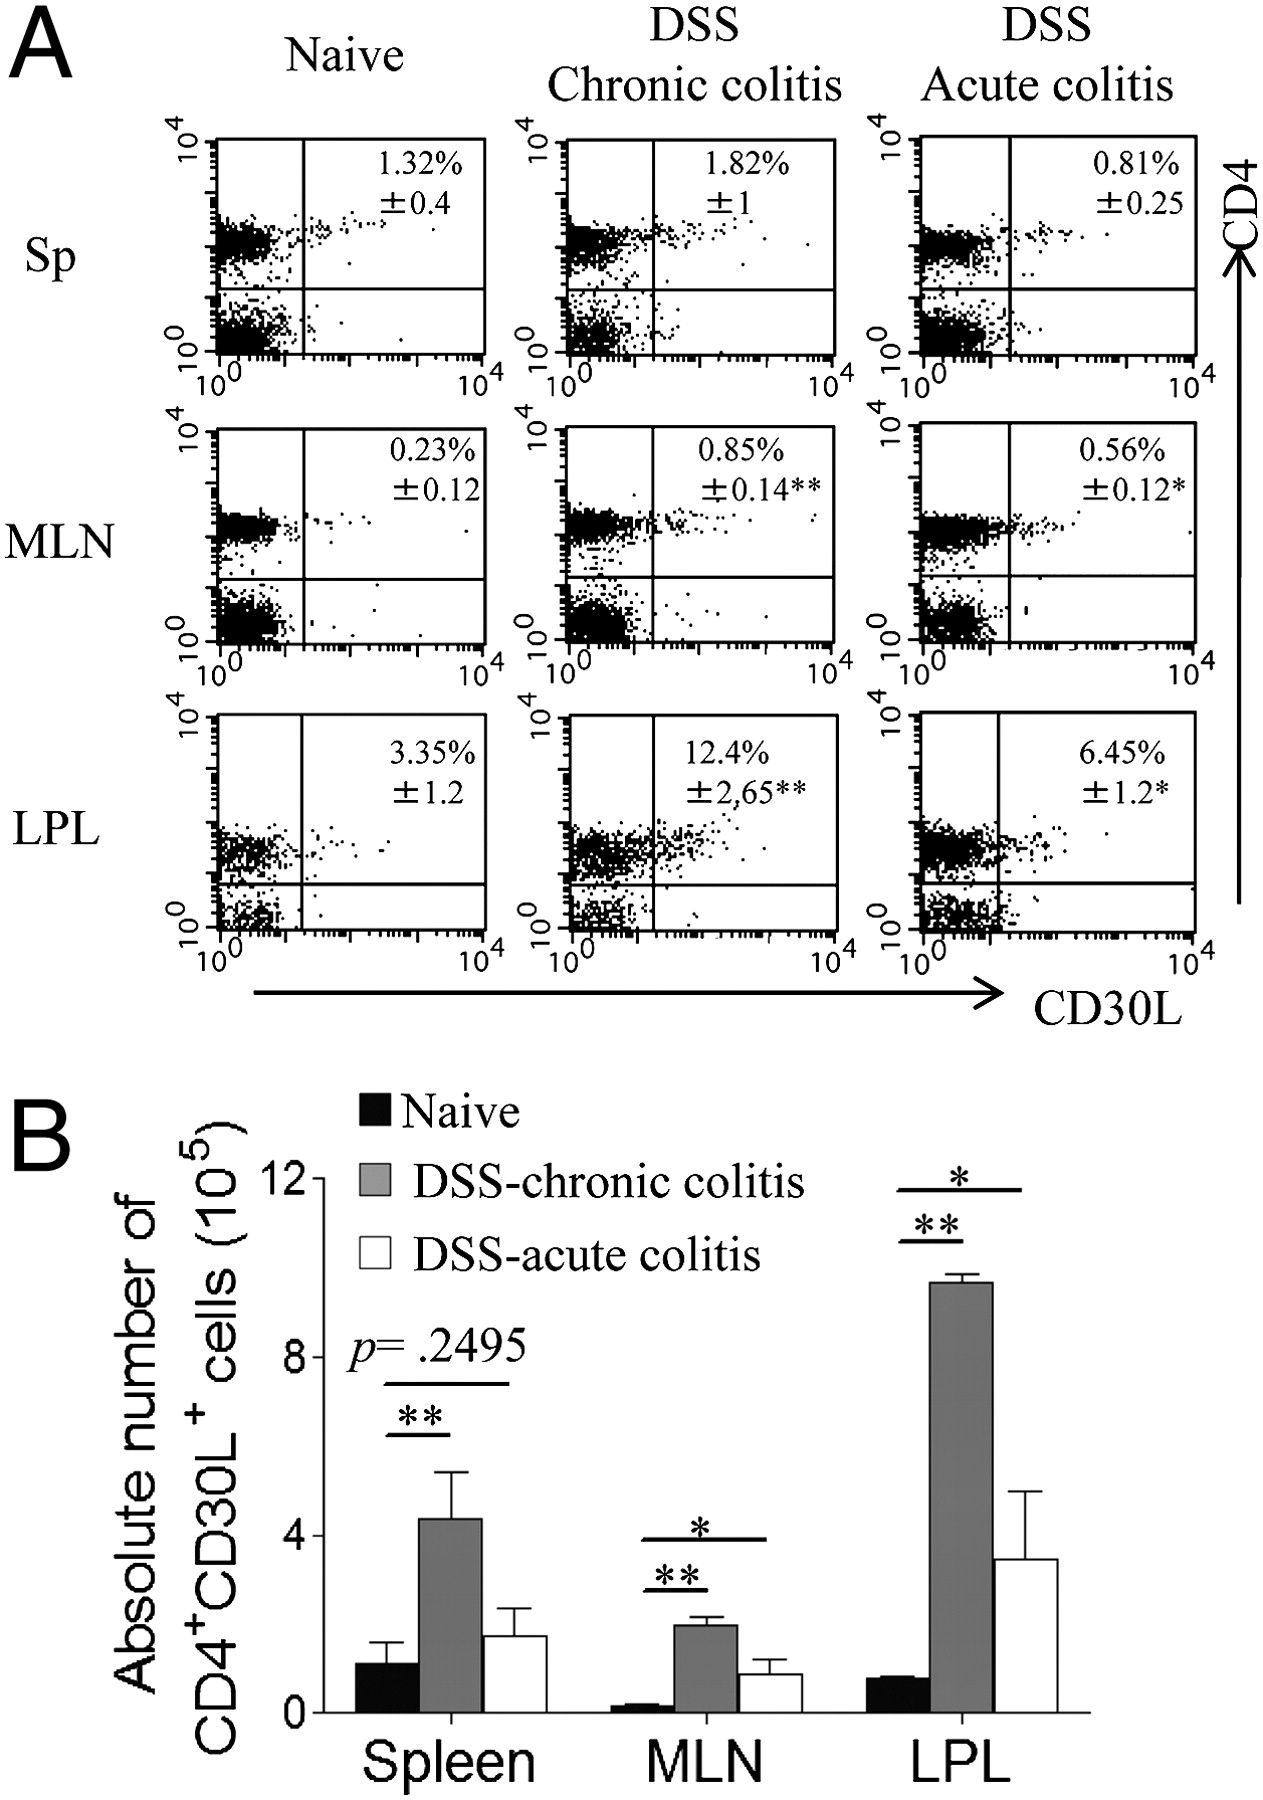 Cd30 Ligand Is A Target For A Novel Biological Therapy